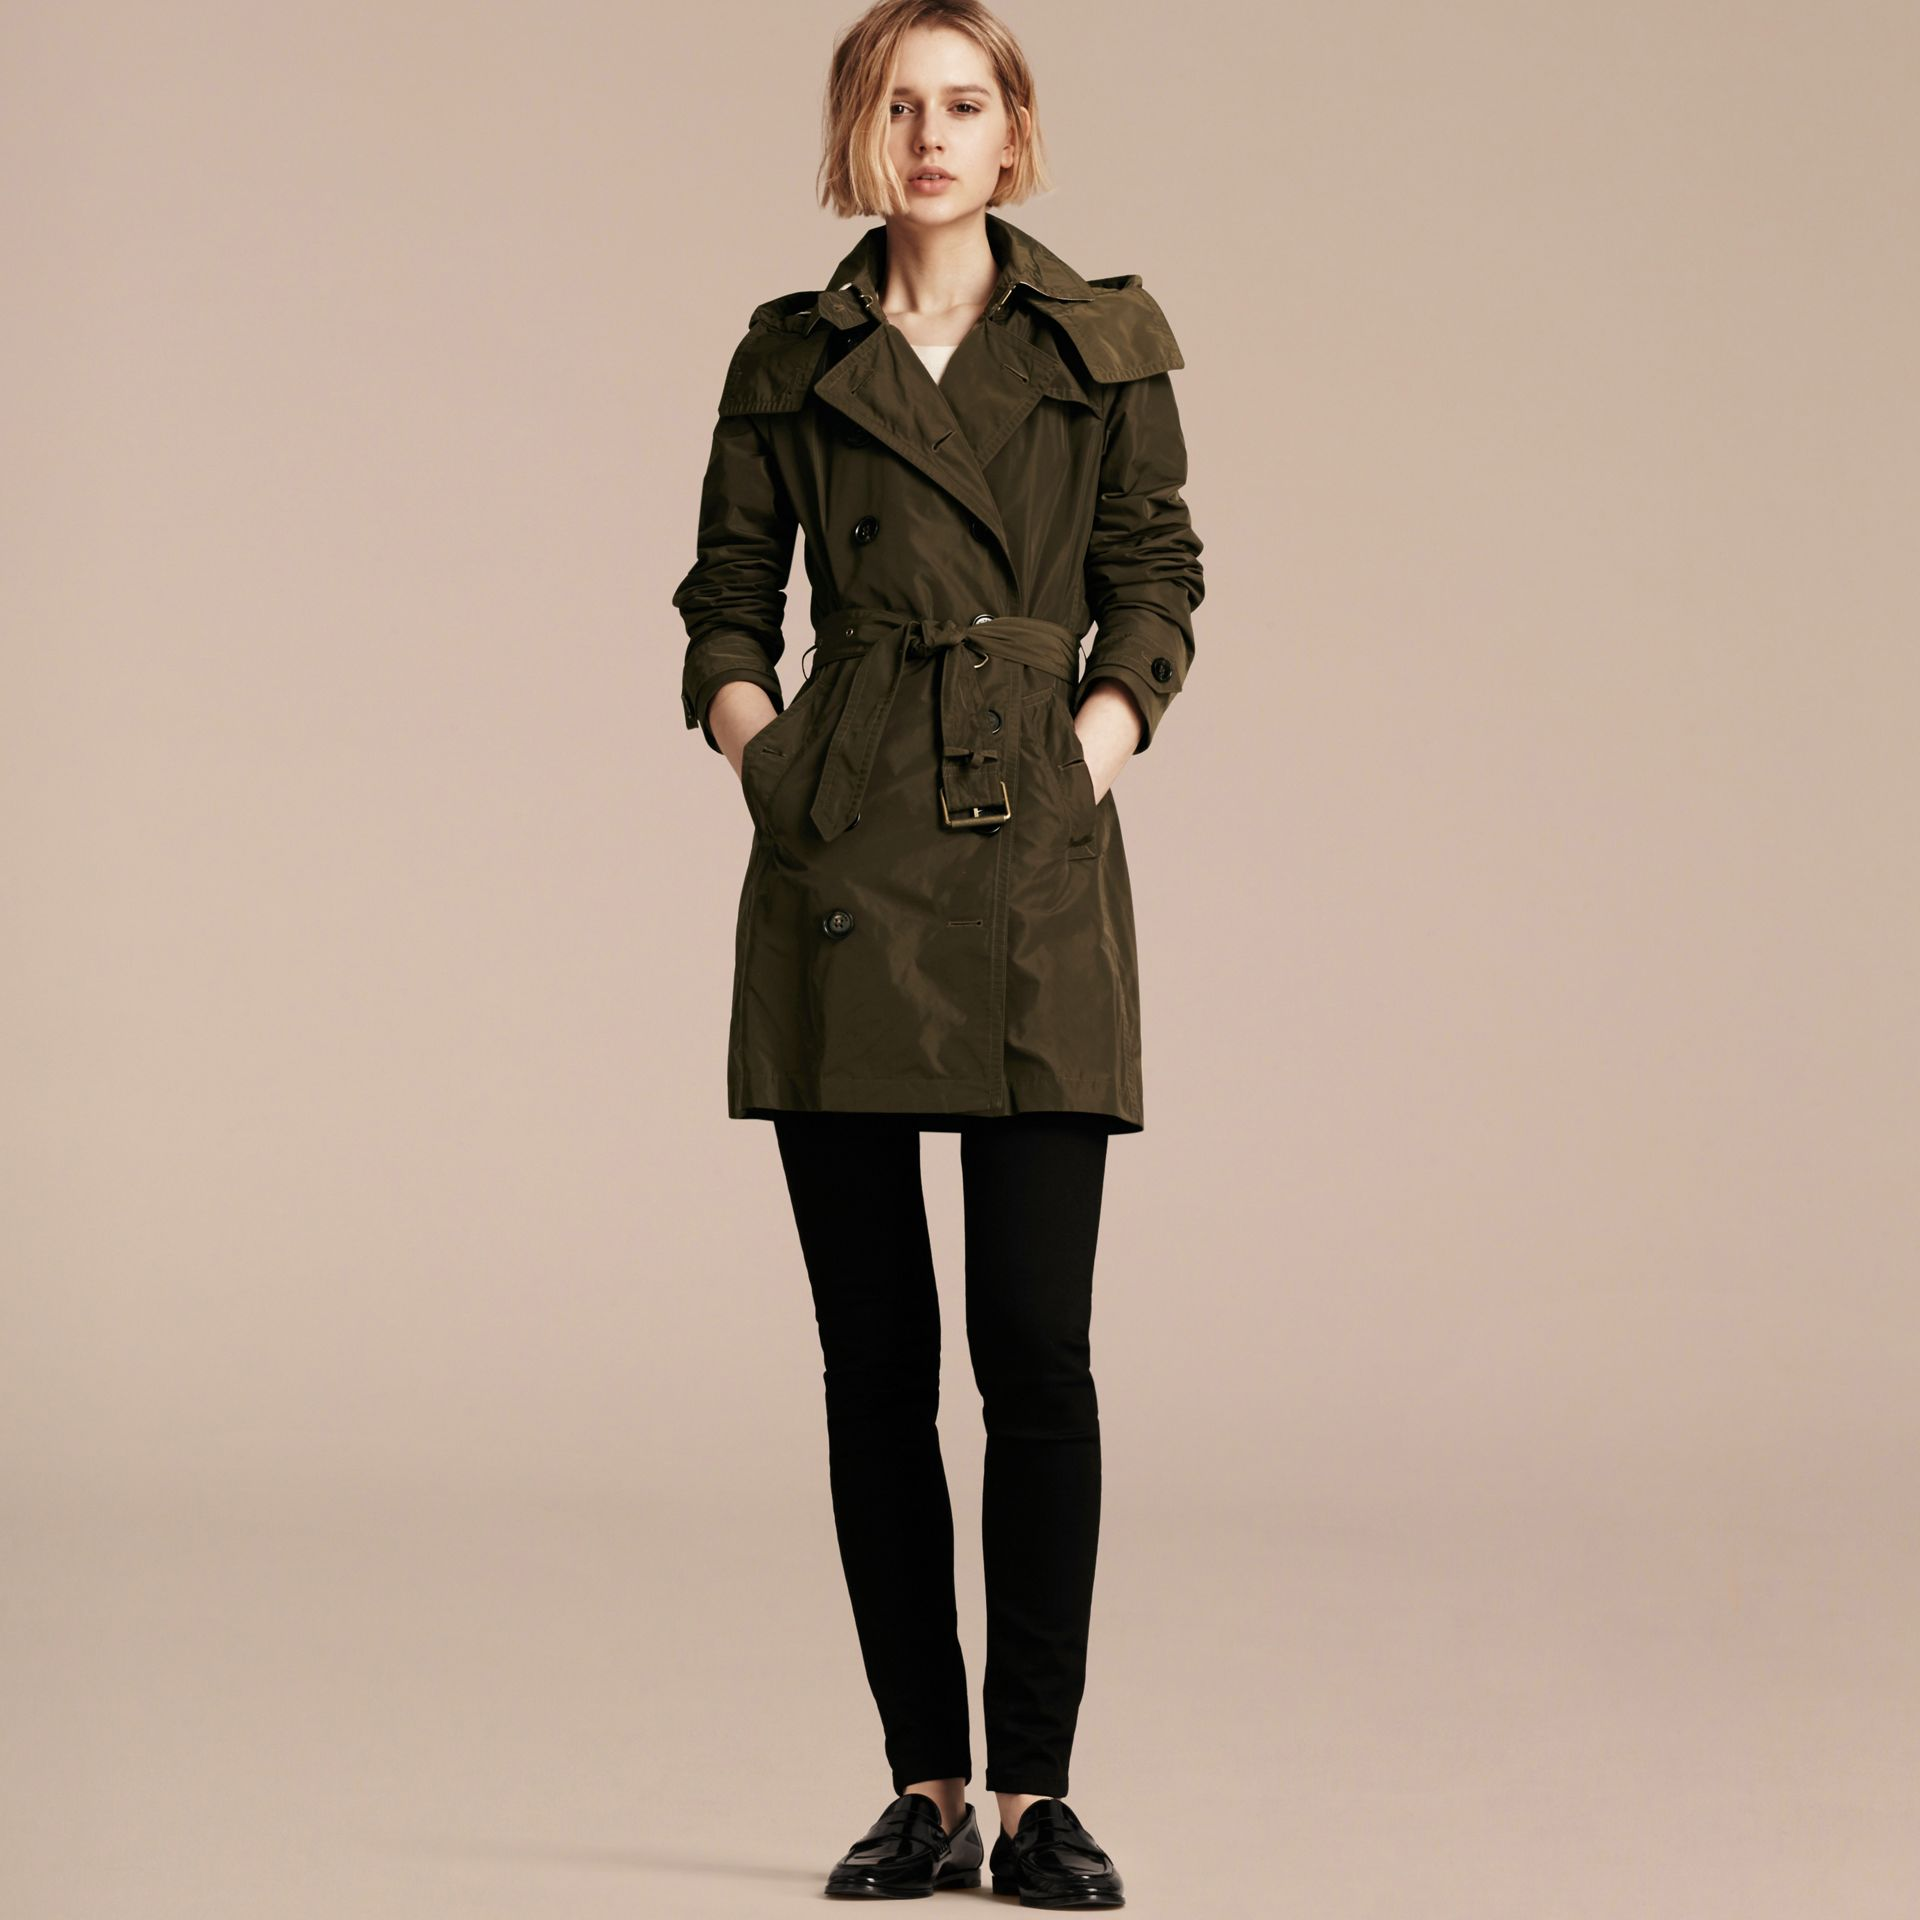 Taffeta Trench Coat with Detachable Hood in Dark Olive - Women | Burberry Singapore - gallery image 1